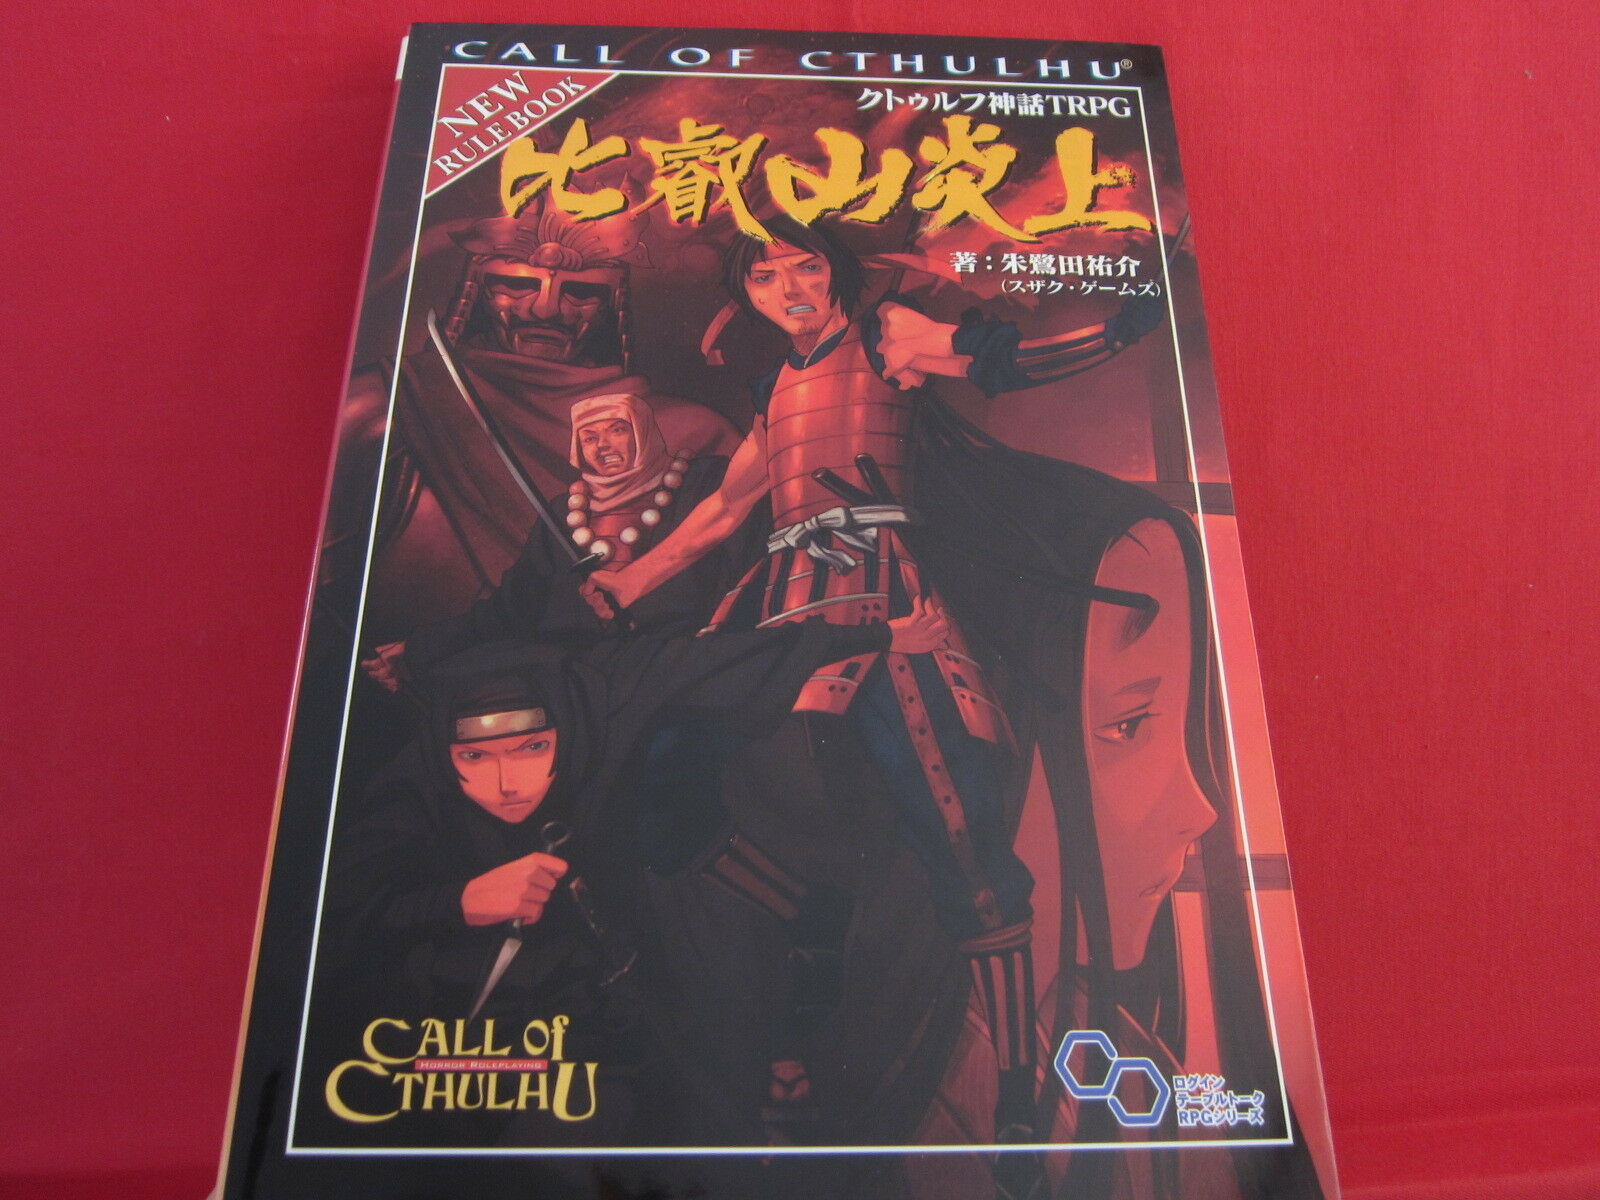 Call of Cthulhu TRPG Hieizan Enjou game book   RPG